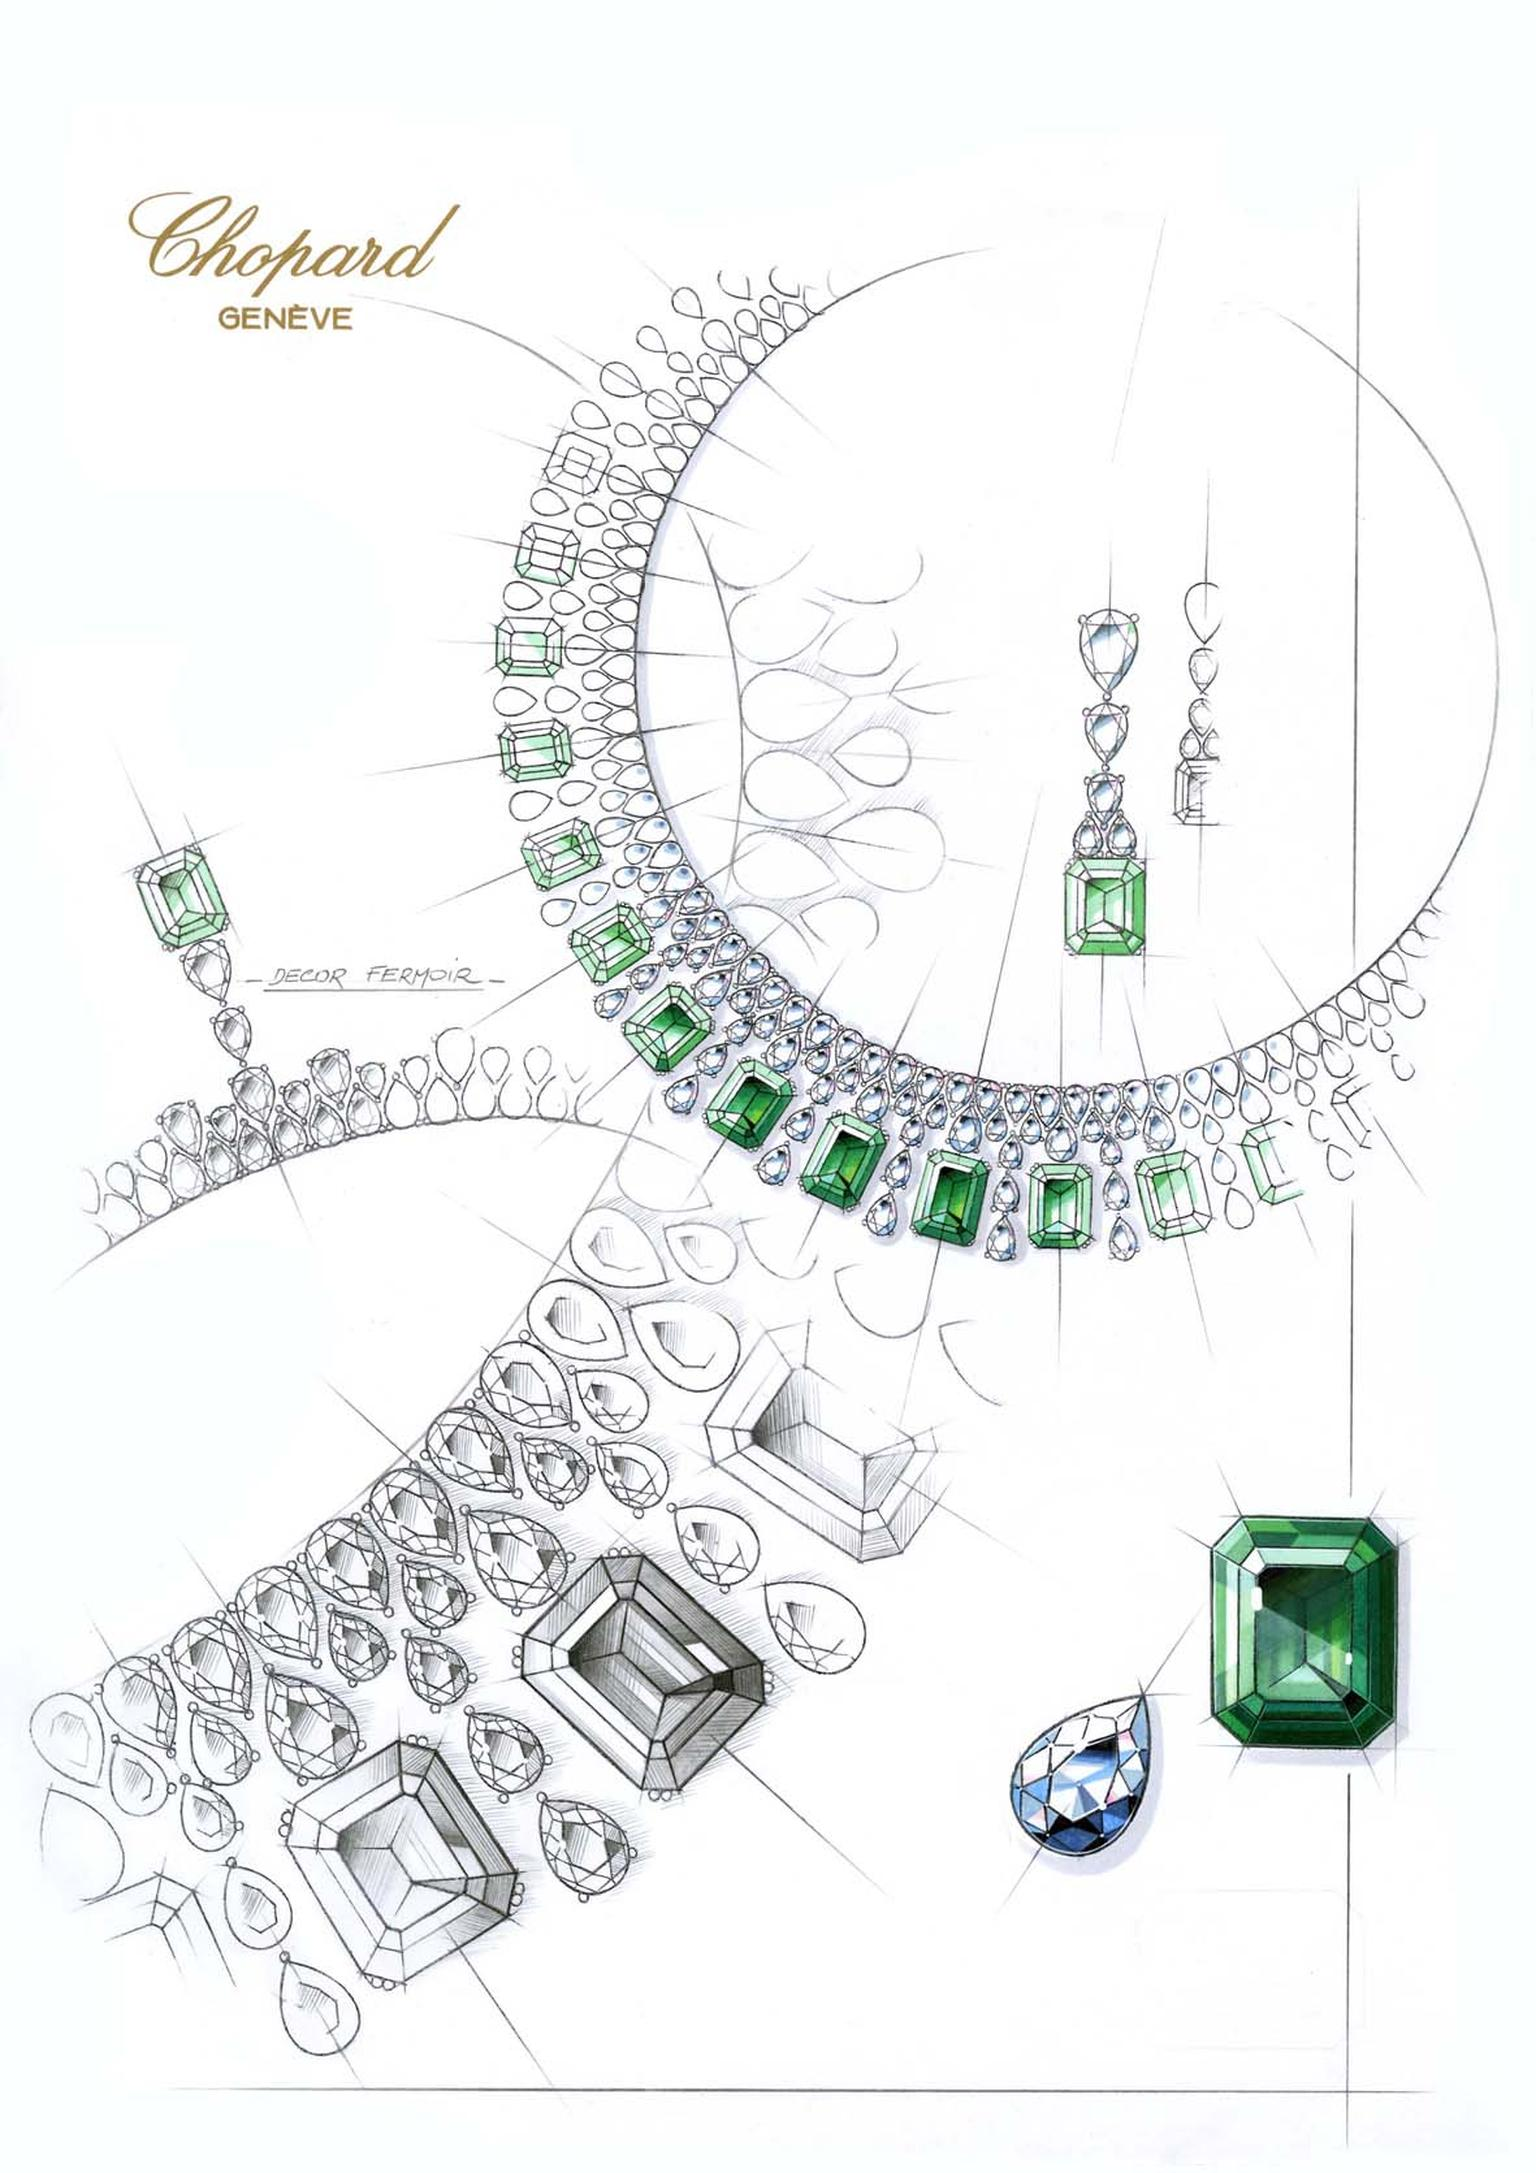 819356-1001 Sketch Emerald Necklace from the Red Carpet Collection 2013ChopardChopard.jpg